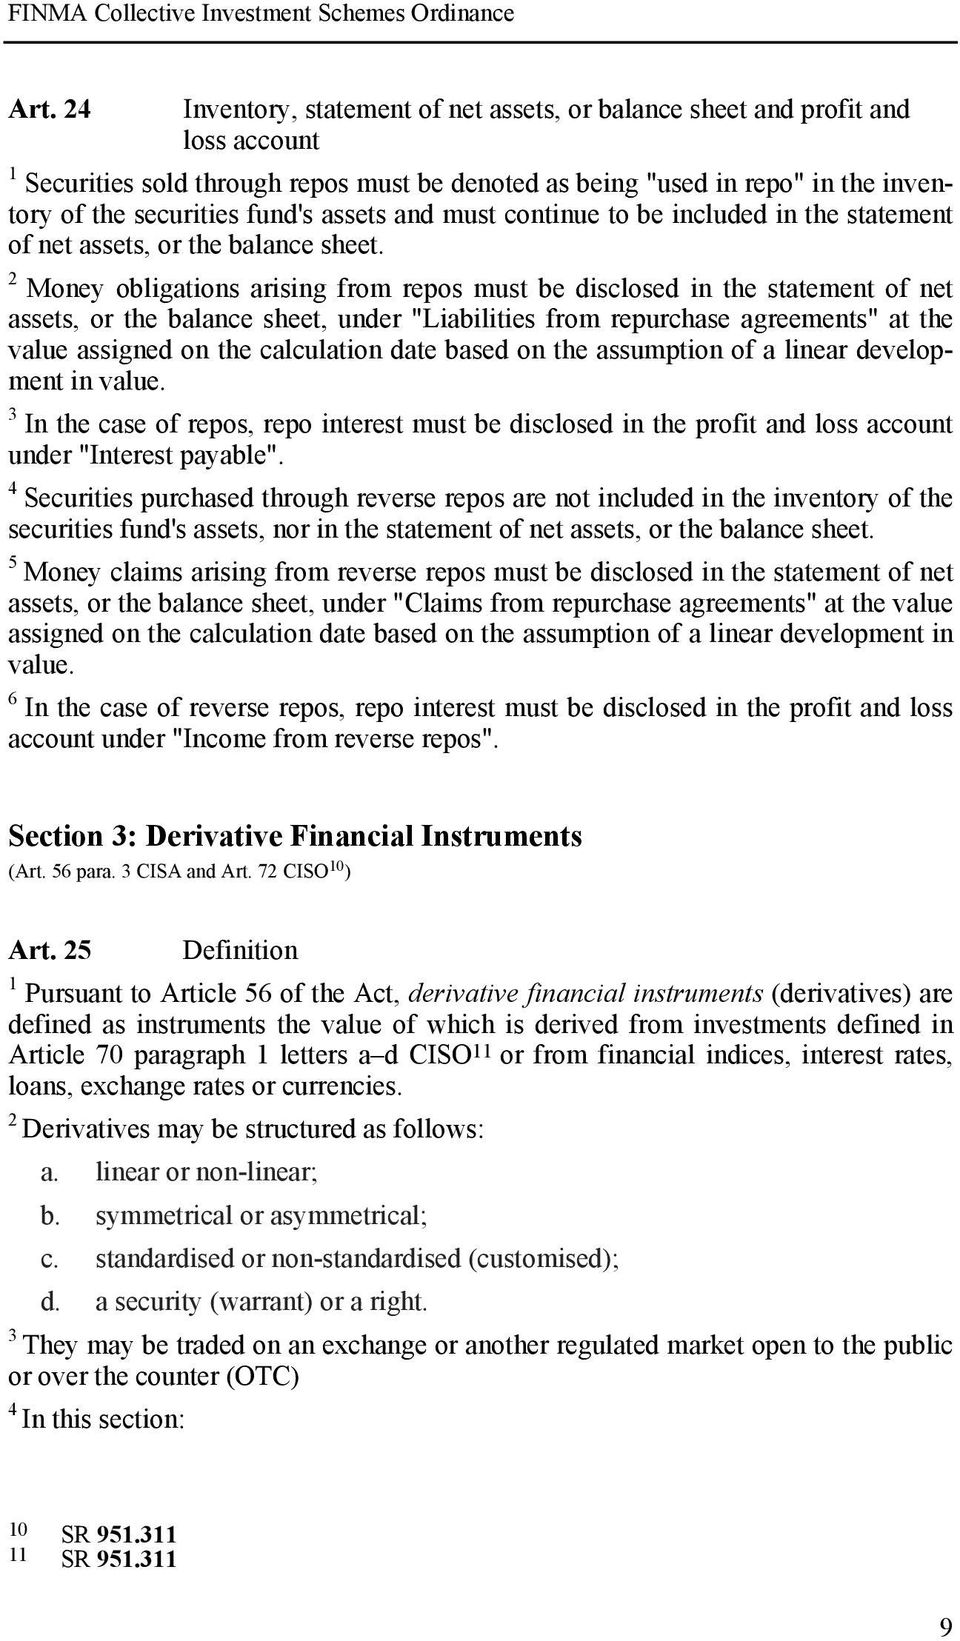 assets and must continue to be included in the statement of net assets, or the balance sheet.